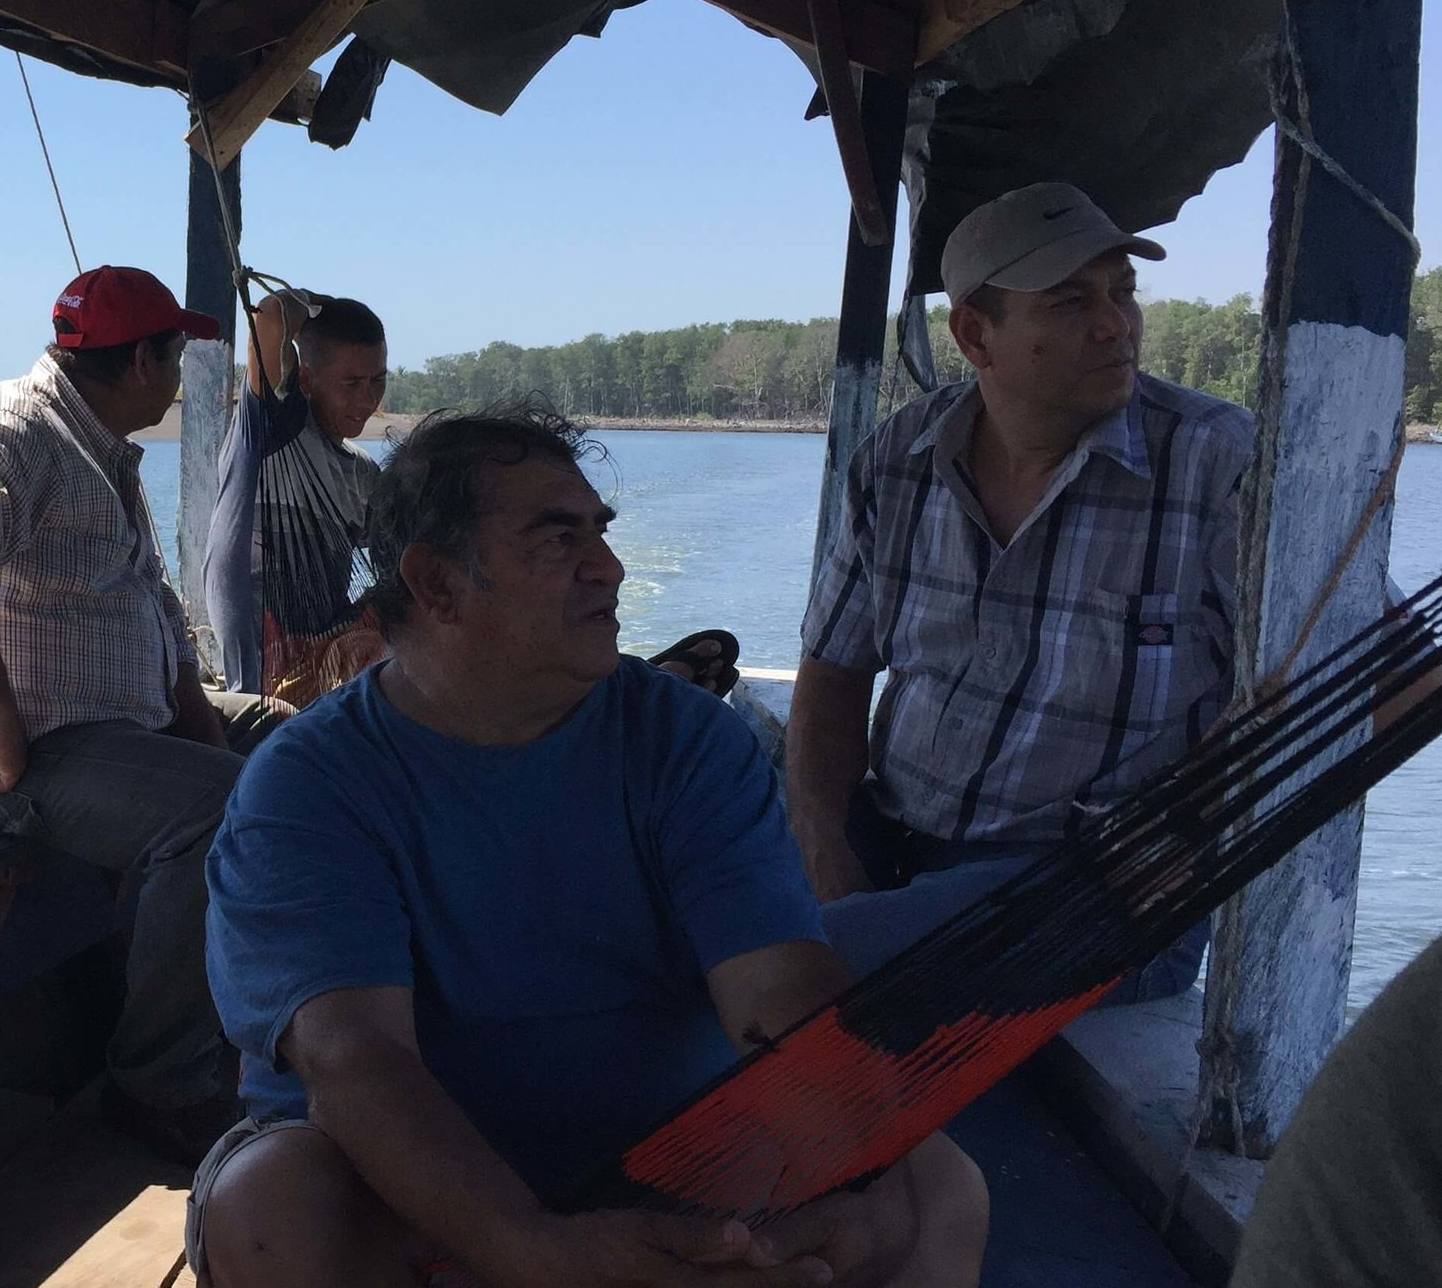 Cesar (seated in the hammock) speaks with Manuel on a boat trip to explore a protected river canal that is being negatively affected by trash.